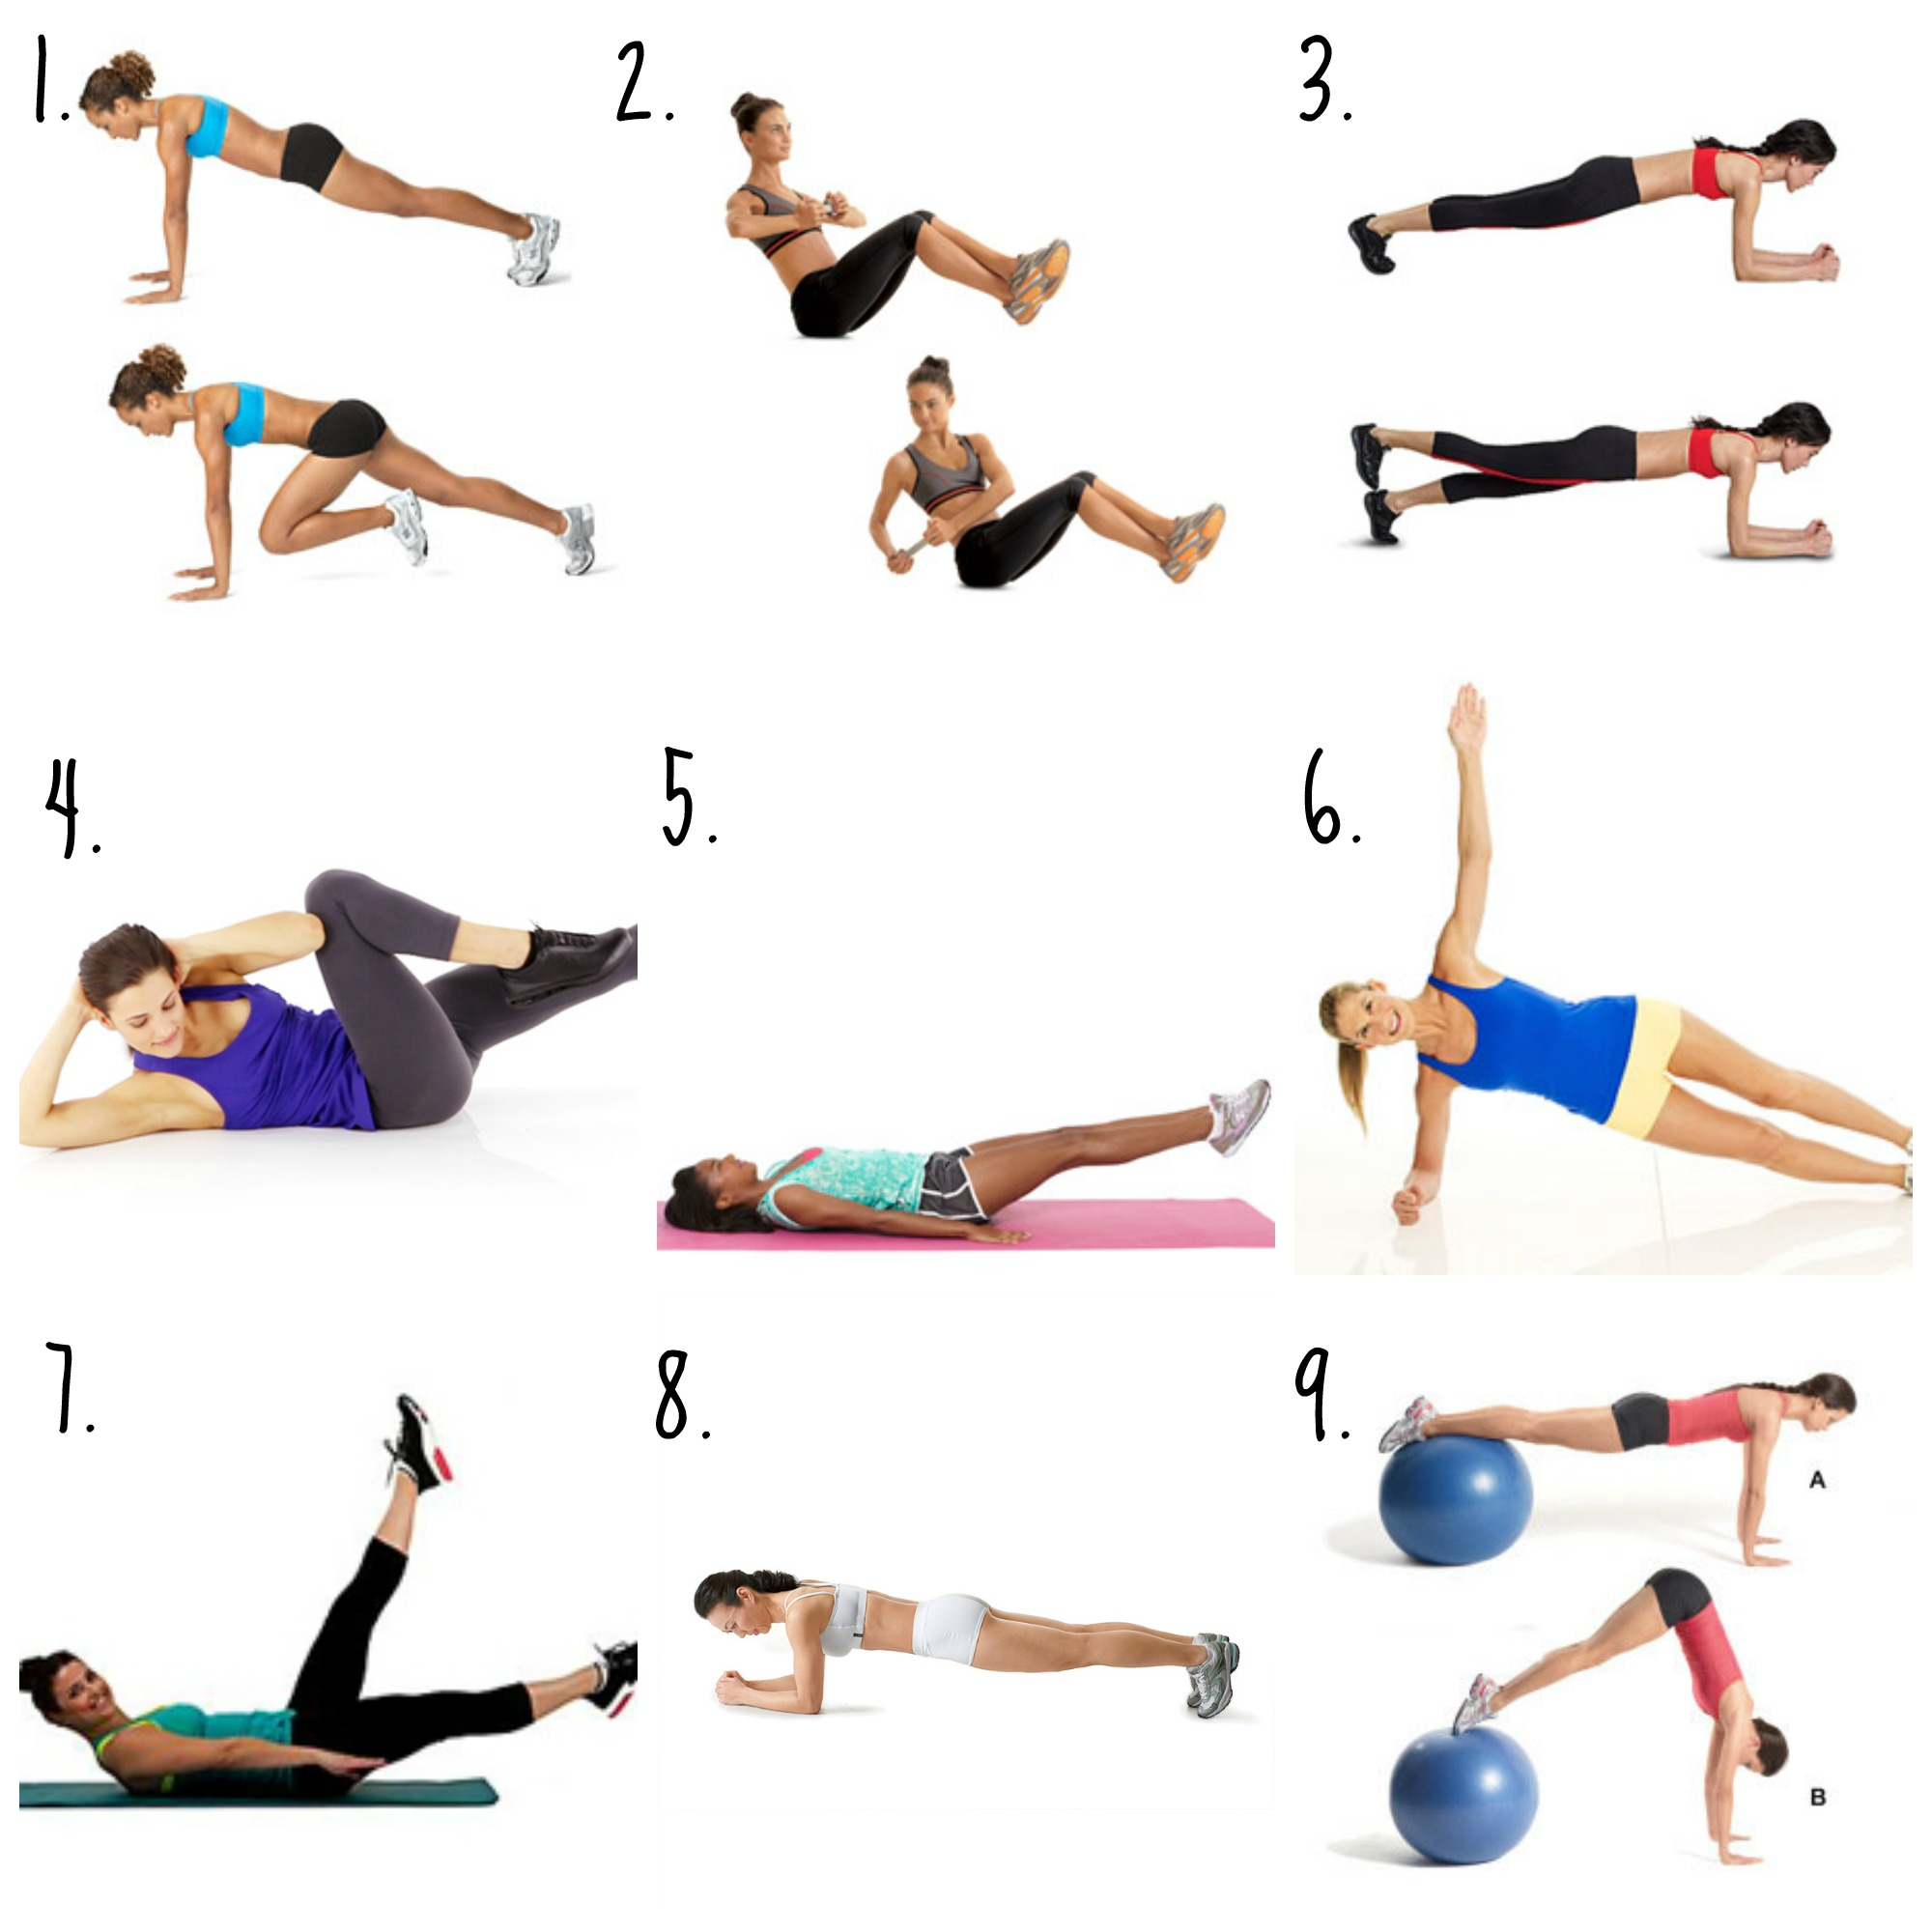 So What Can You Really Do In 10 Minutes Get A Total Body Workout That 39 S Here Are Four Of My Favorite Minute Workouts